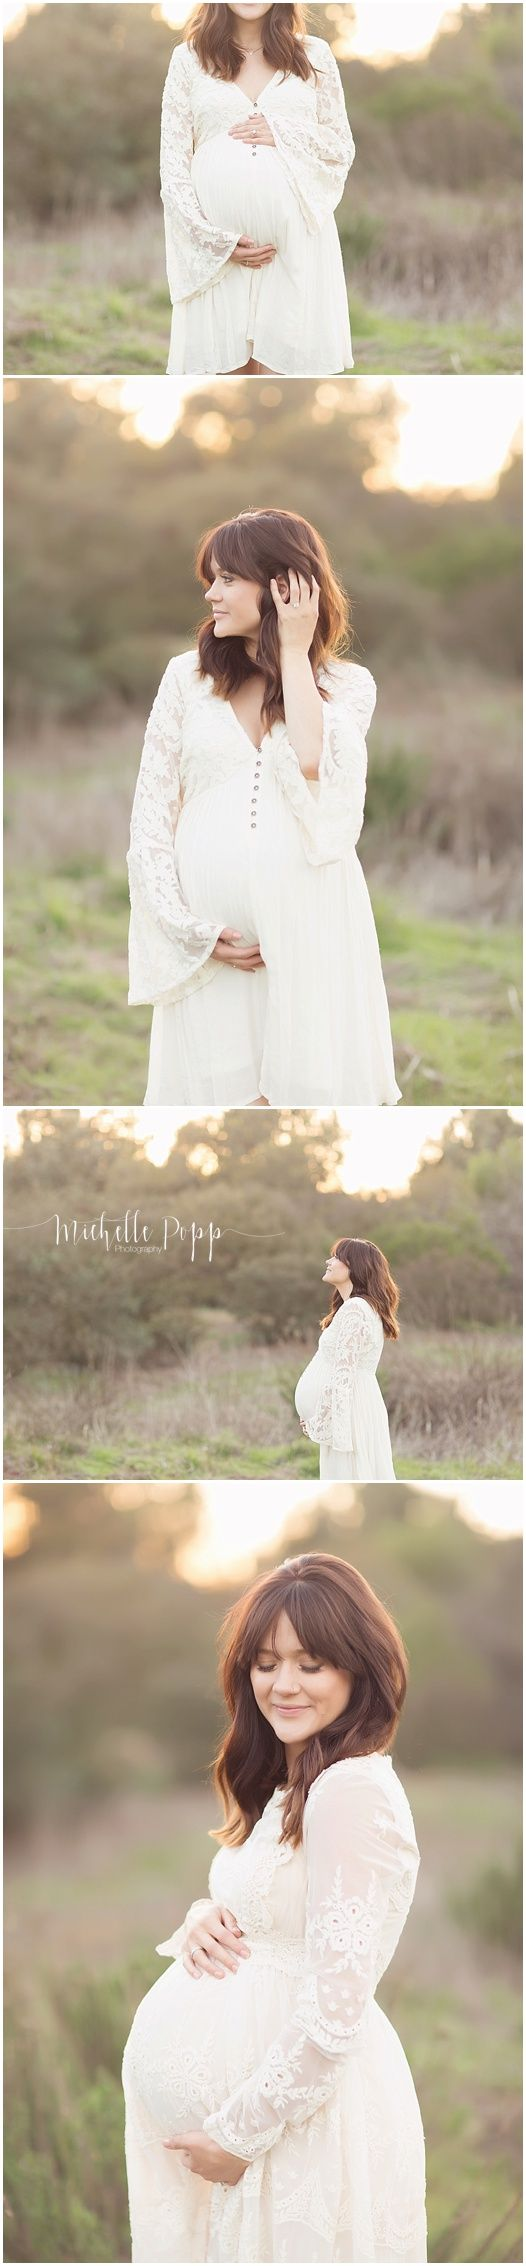 San Diego Maternity Photographer | maternity photos. field, maternity photography http://www.michellepoppphotography.com